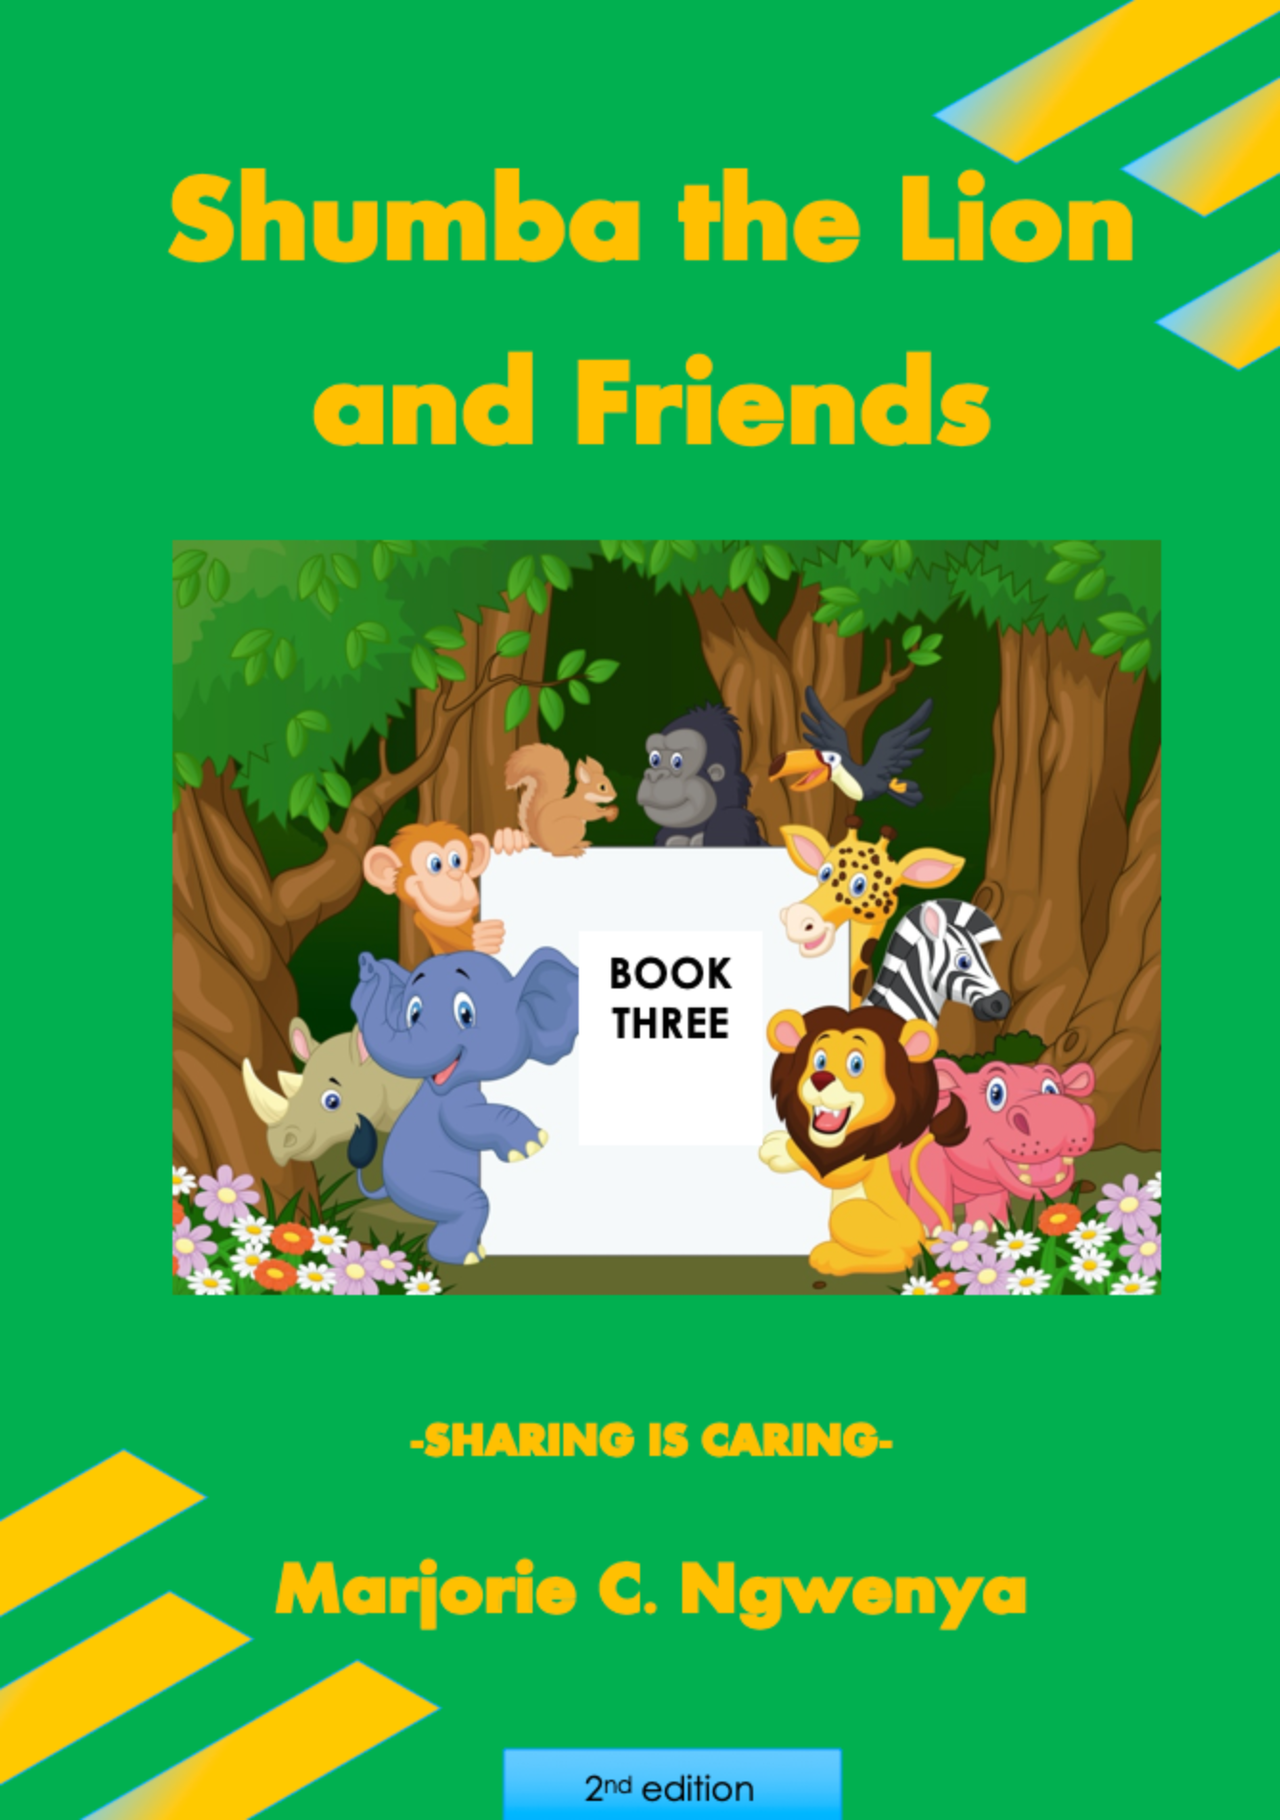 Shumba the Lion and Friends: Book 3 - Sharing is Caring